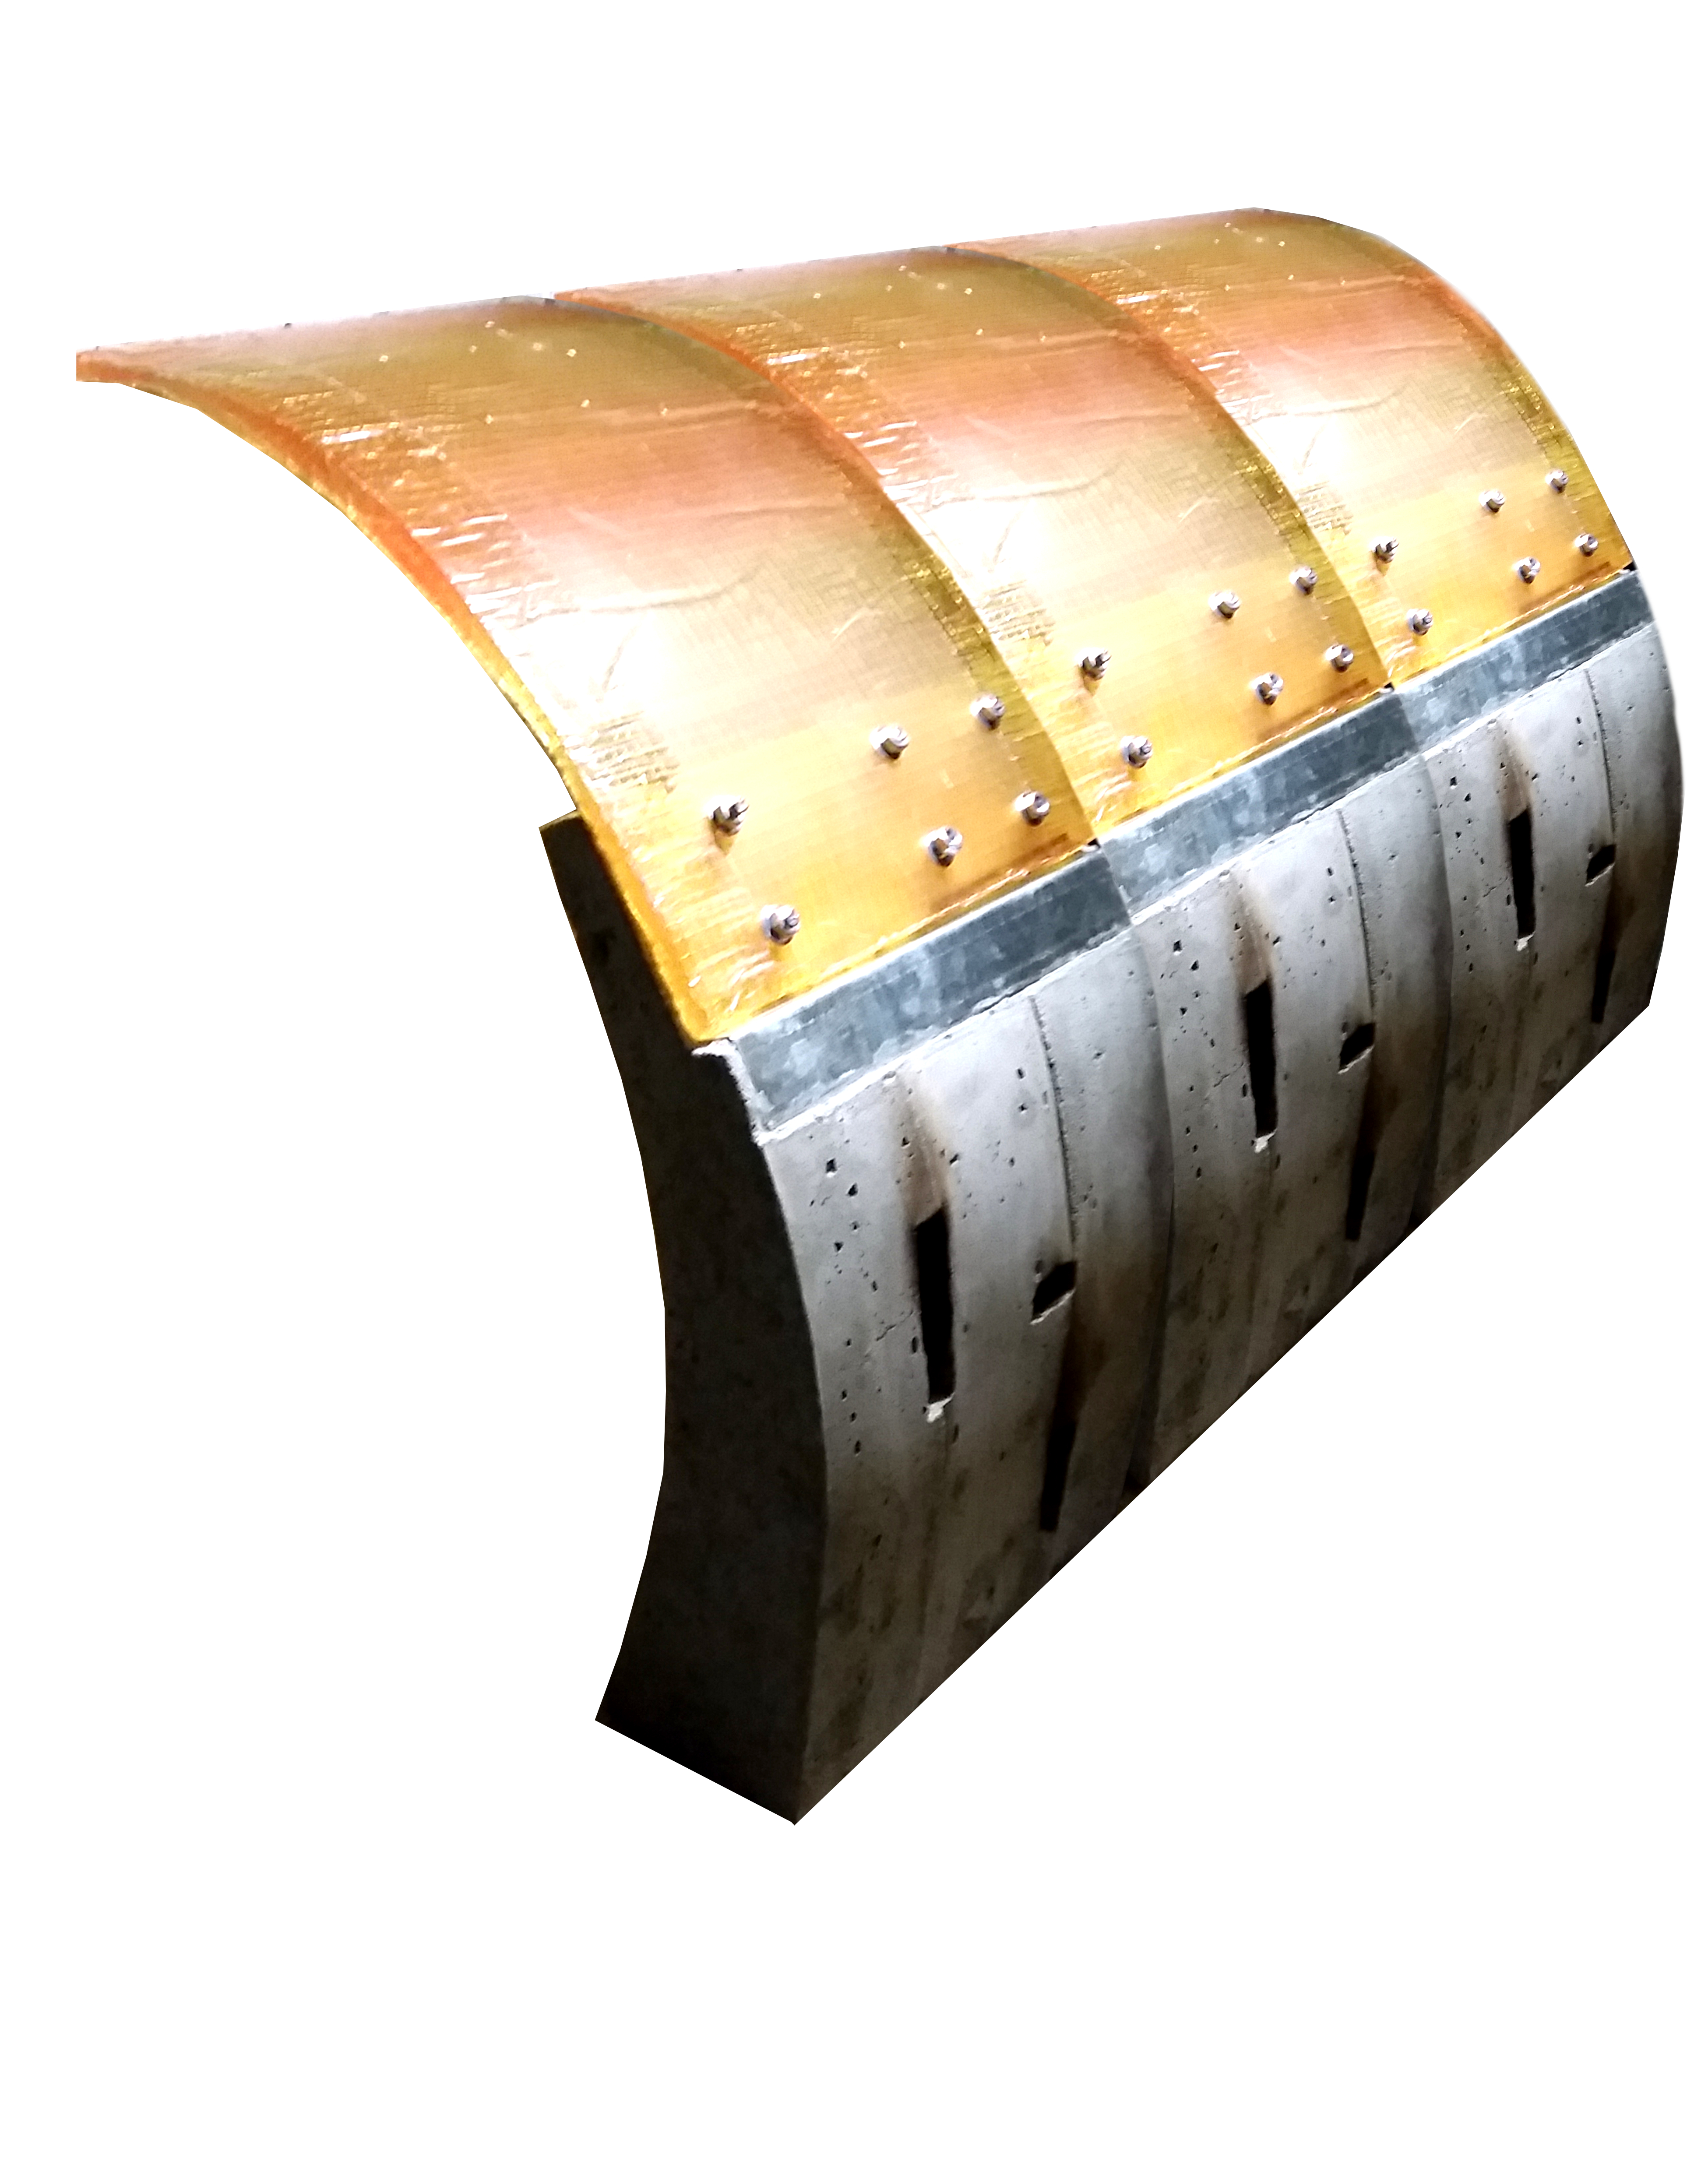 material assemblage of concrete metal flashing and resin sheet